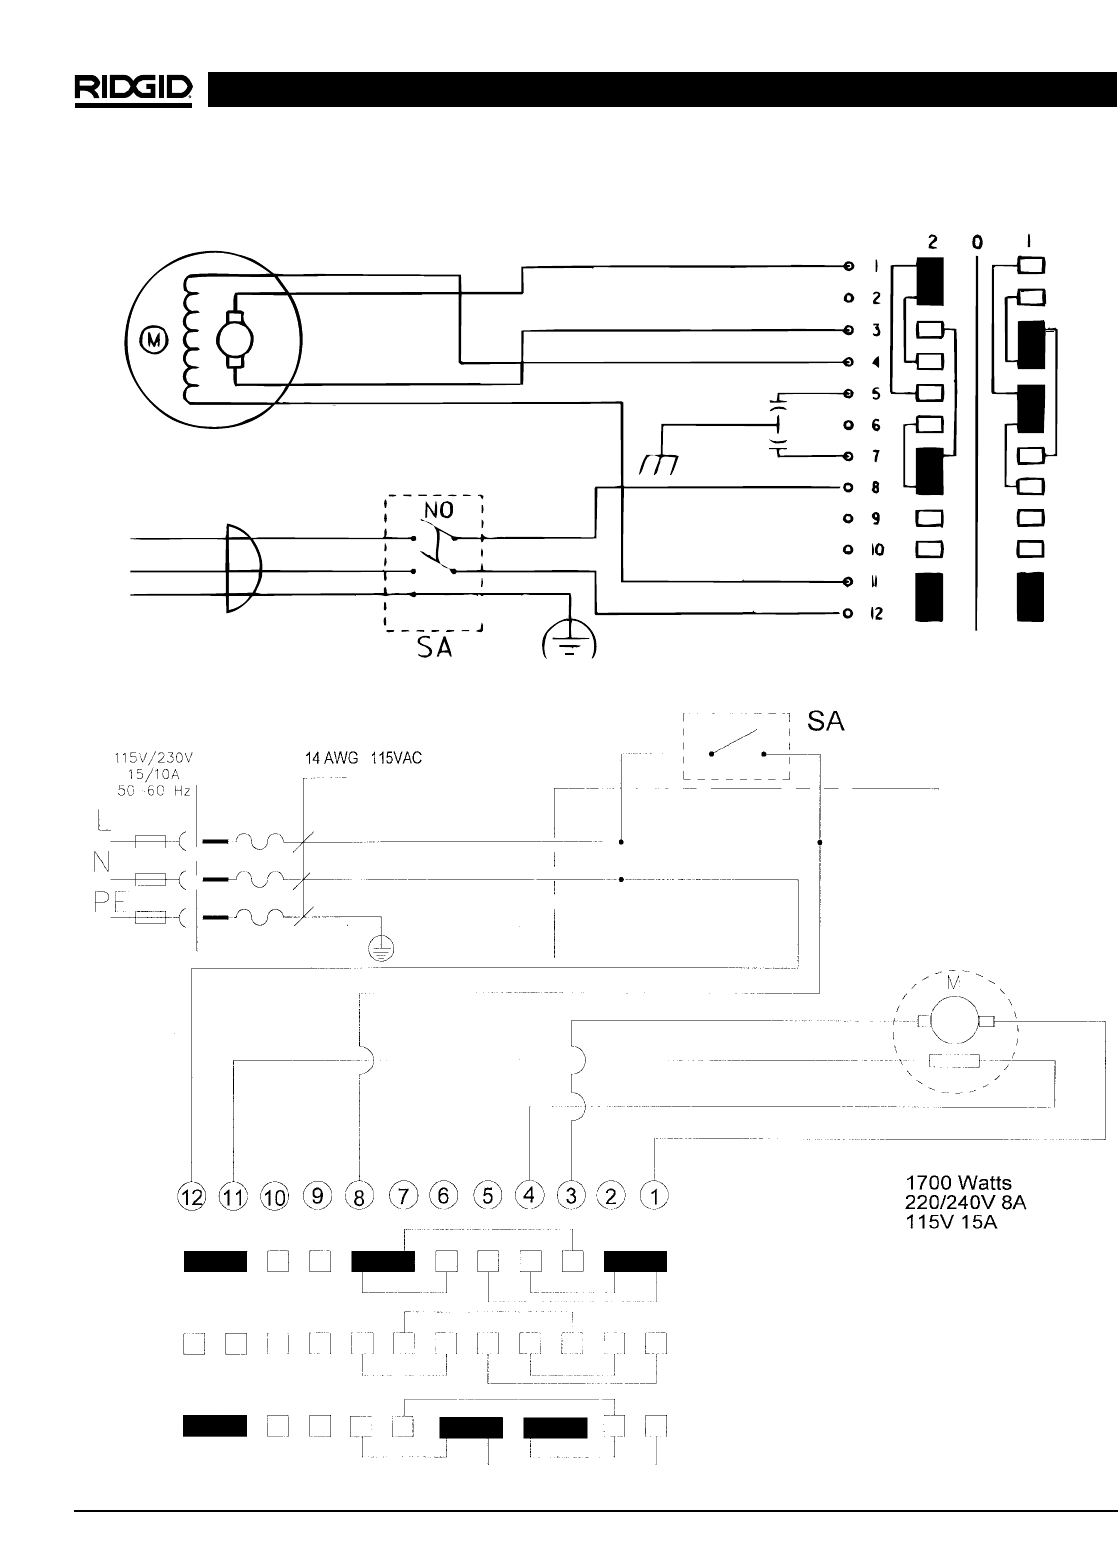 Ridgid wiring diagram wire center ridgid 700 wire diagram trusted wiring diagrams u2022 rh 66 42 81 37 ridgid 300 wiring diagram ridgid table saw r4510 wiring diagram greentooth Choice Image